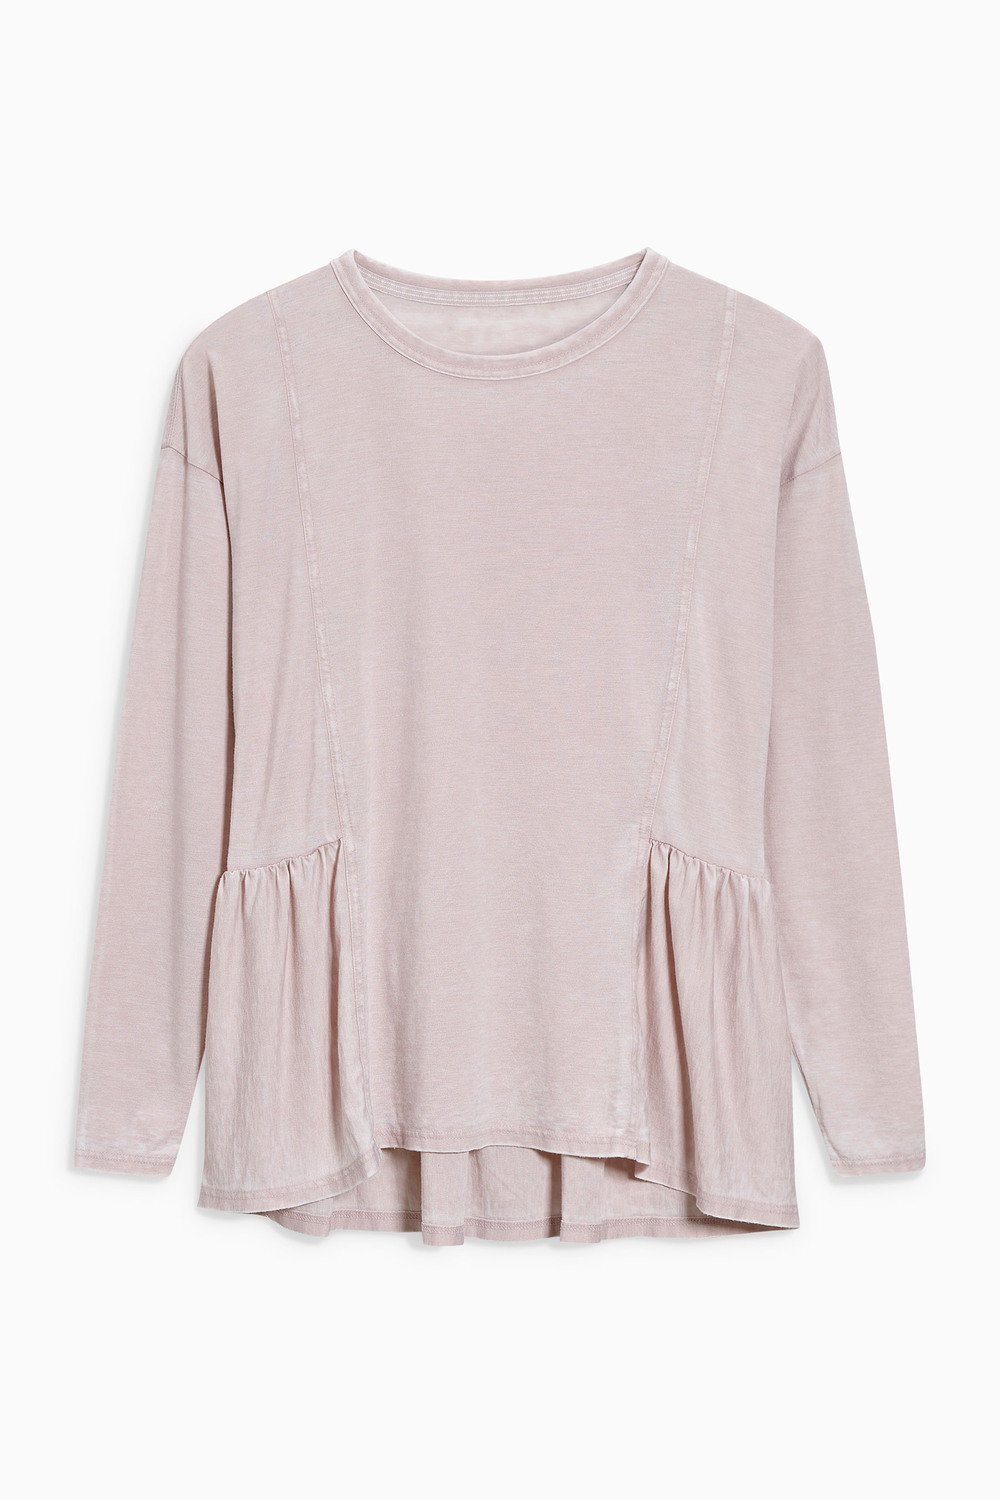 Next Washed Long Sleeved Peplum Top